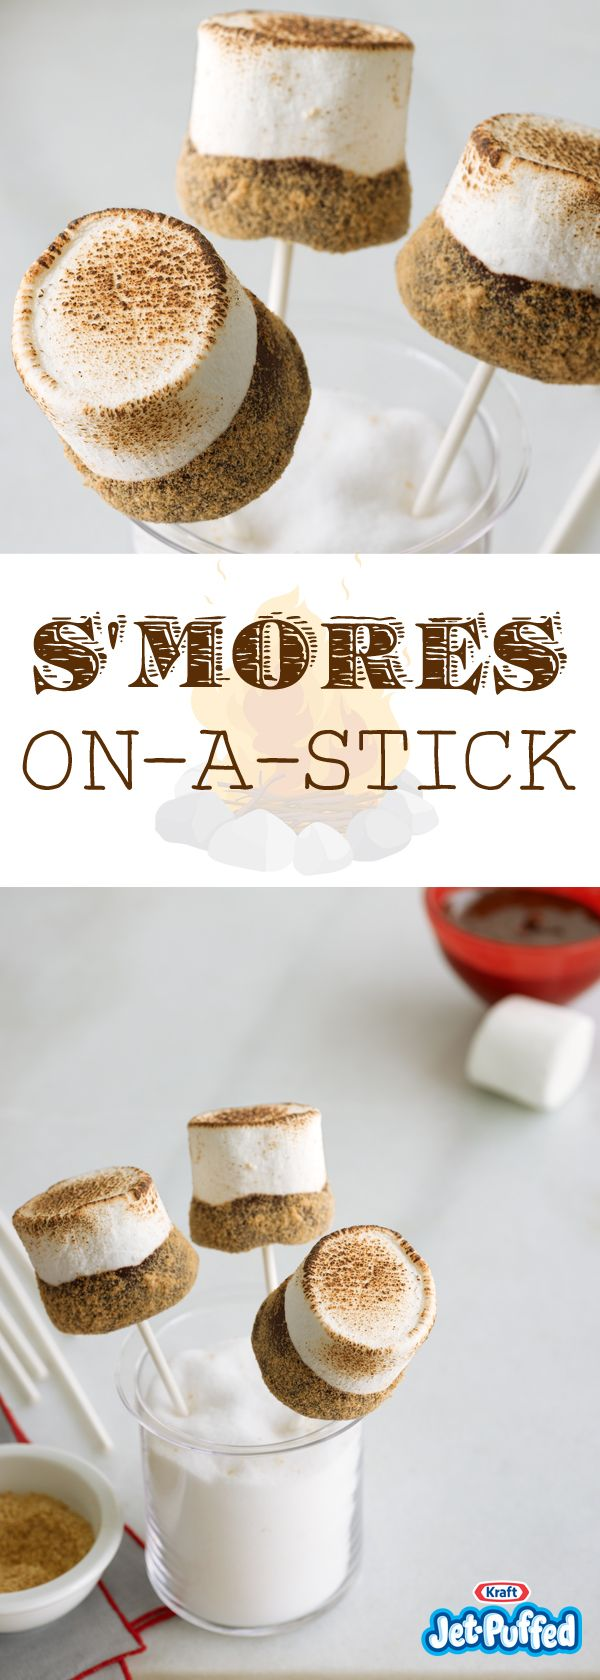 94 best S\'MORES RECIPES images by JET-PUFFED Marshmallows on ...